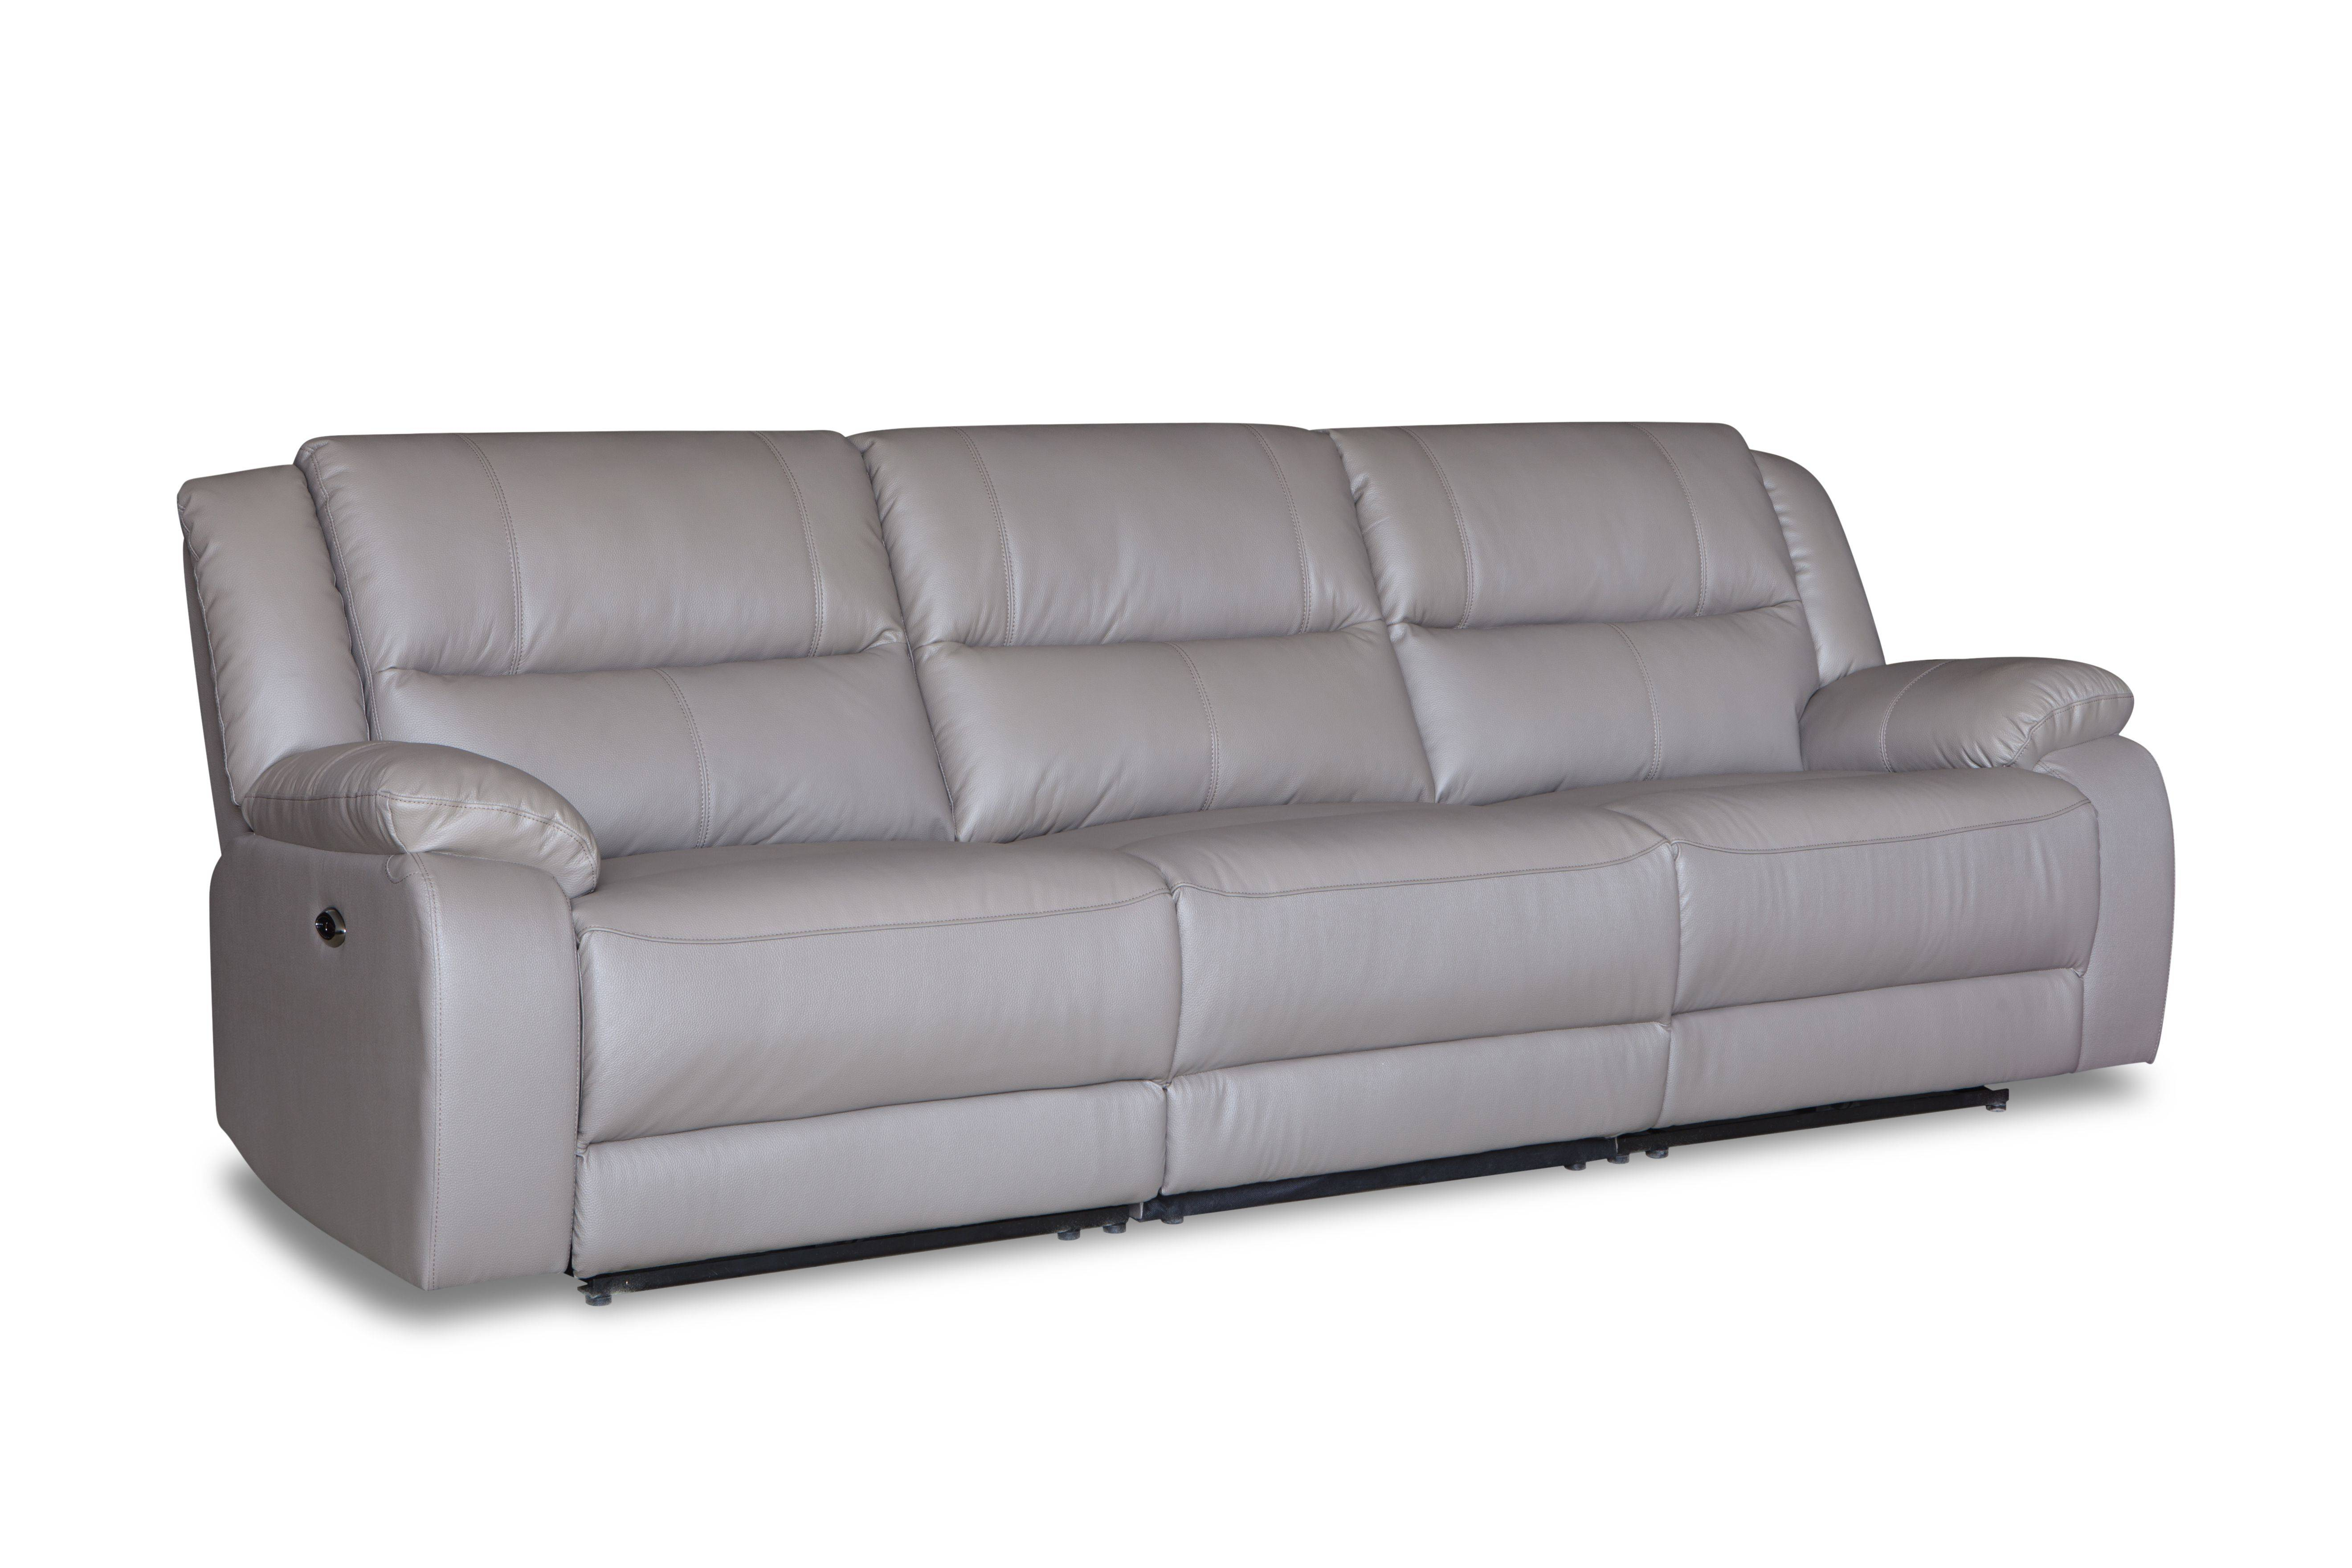 High quality luxury modern leather living room sectional sofa